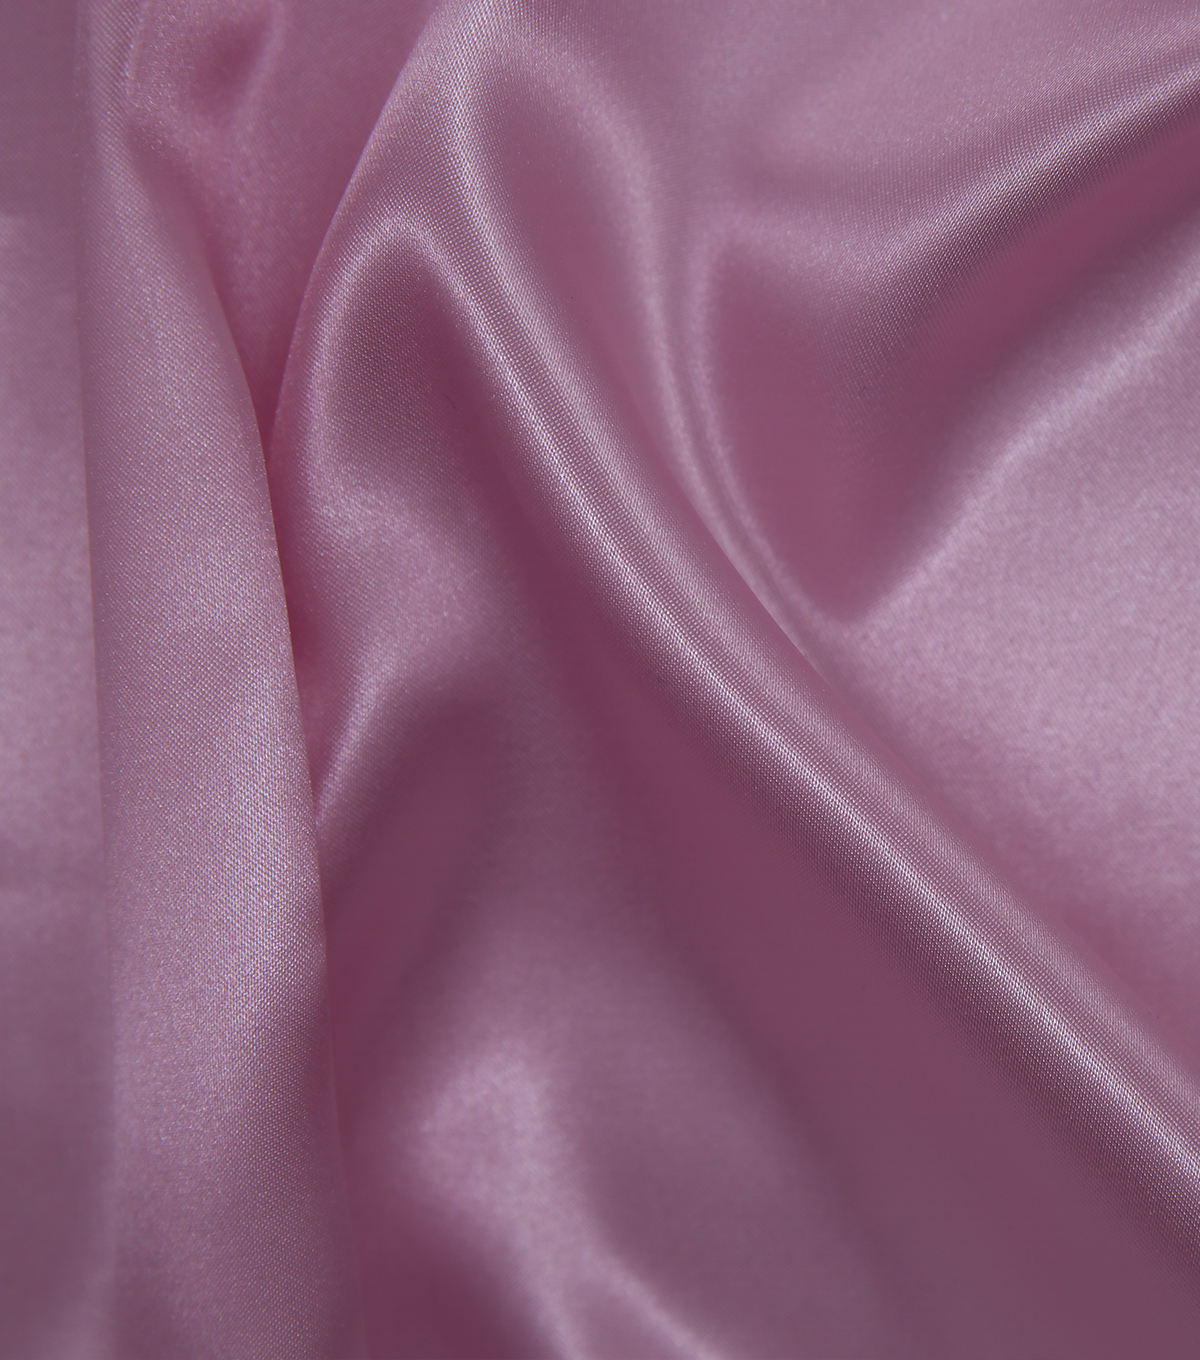 Glitterbug Satin Fabric -Solid Light Pink